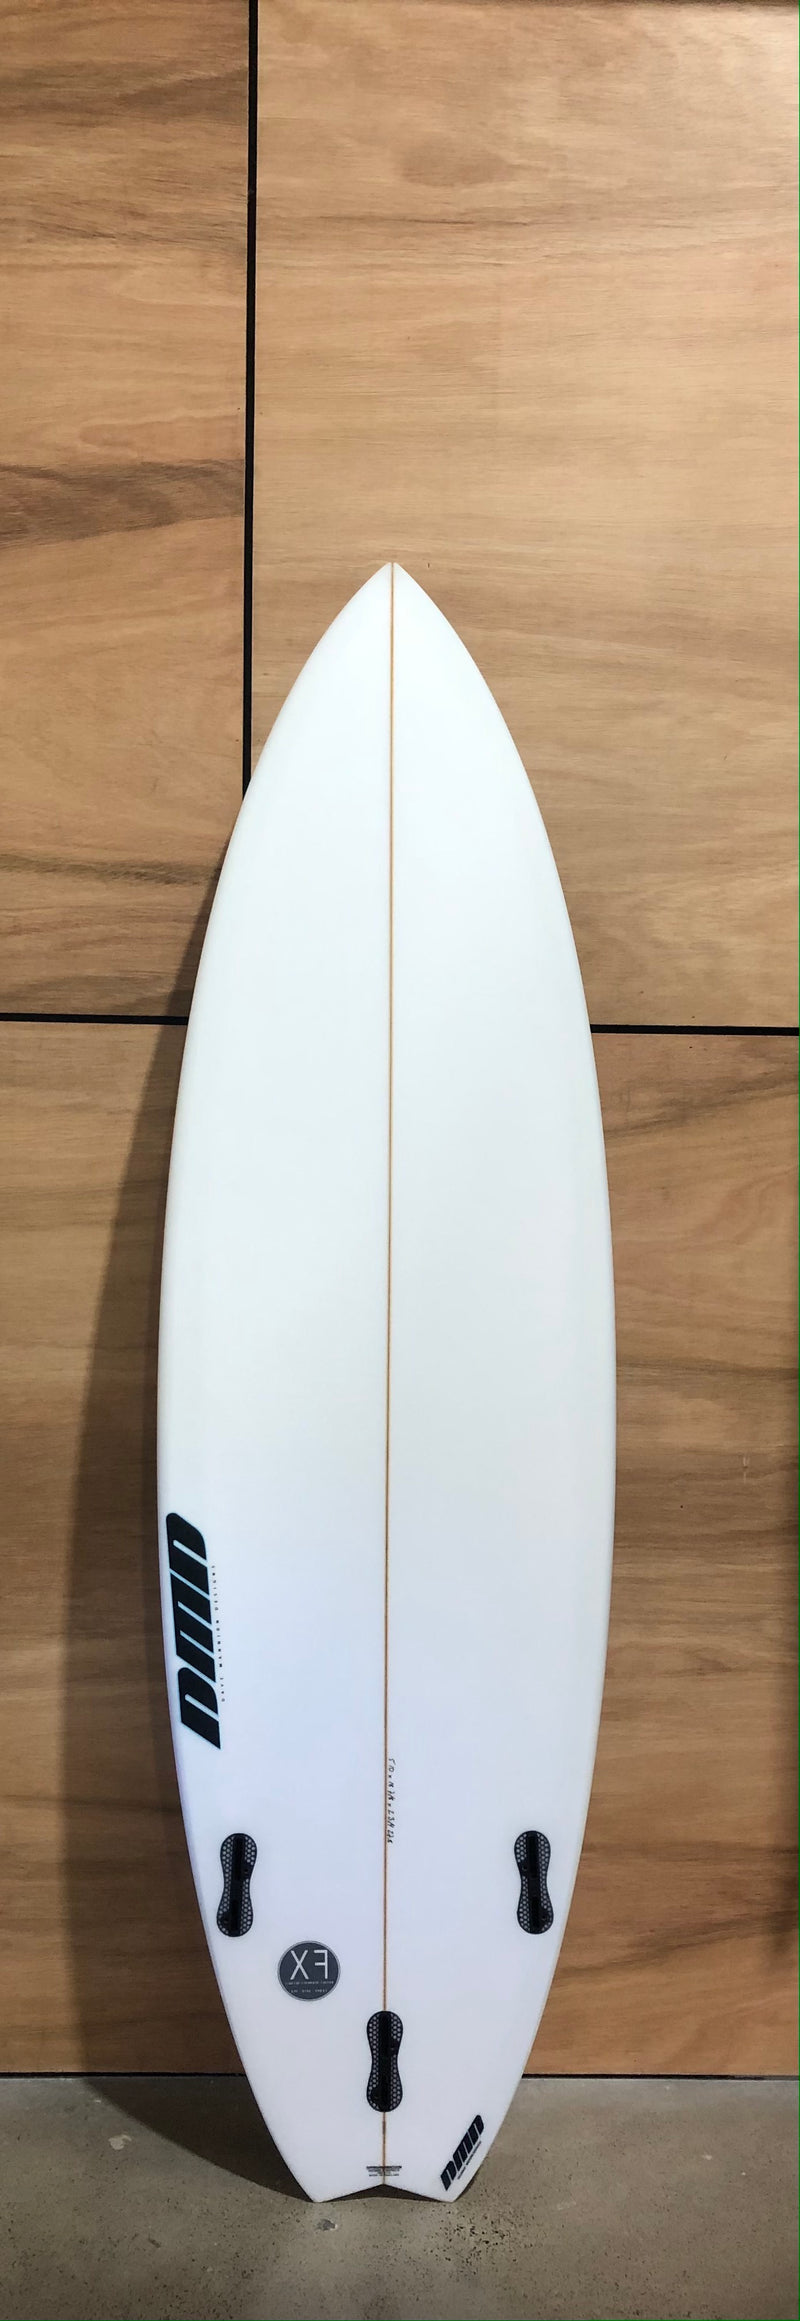 DMD D-TRAIN Swallow Tail XF - Board Store DMDSurfboard